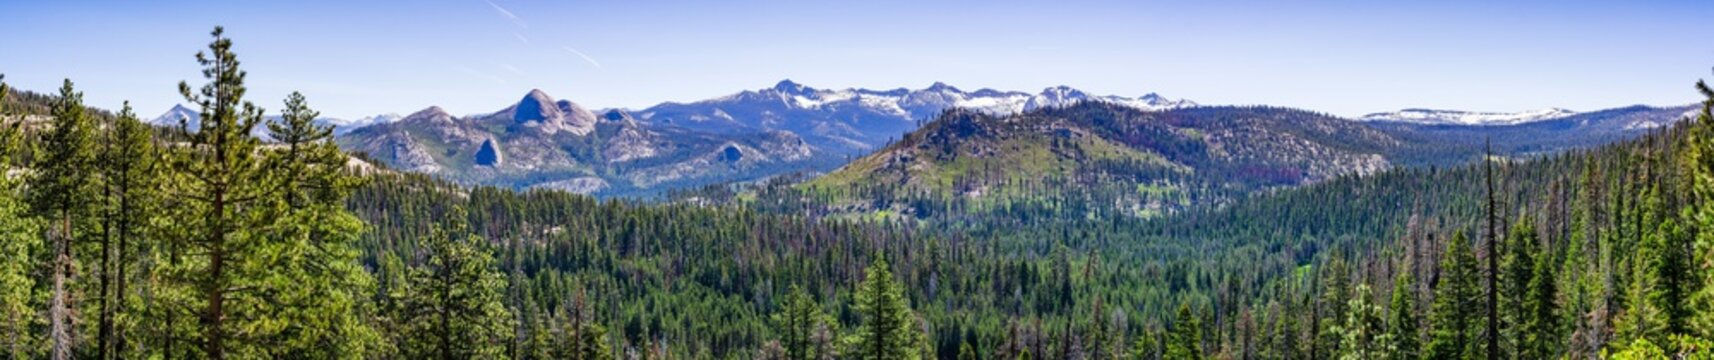 Panoramic view of wilderness areas in Yosemite National Park with evergreen forests covering valleys and snow capped mountains visible in the background; Sierra Nevada mountains, California